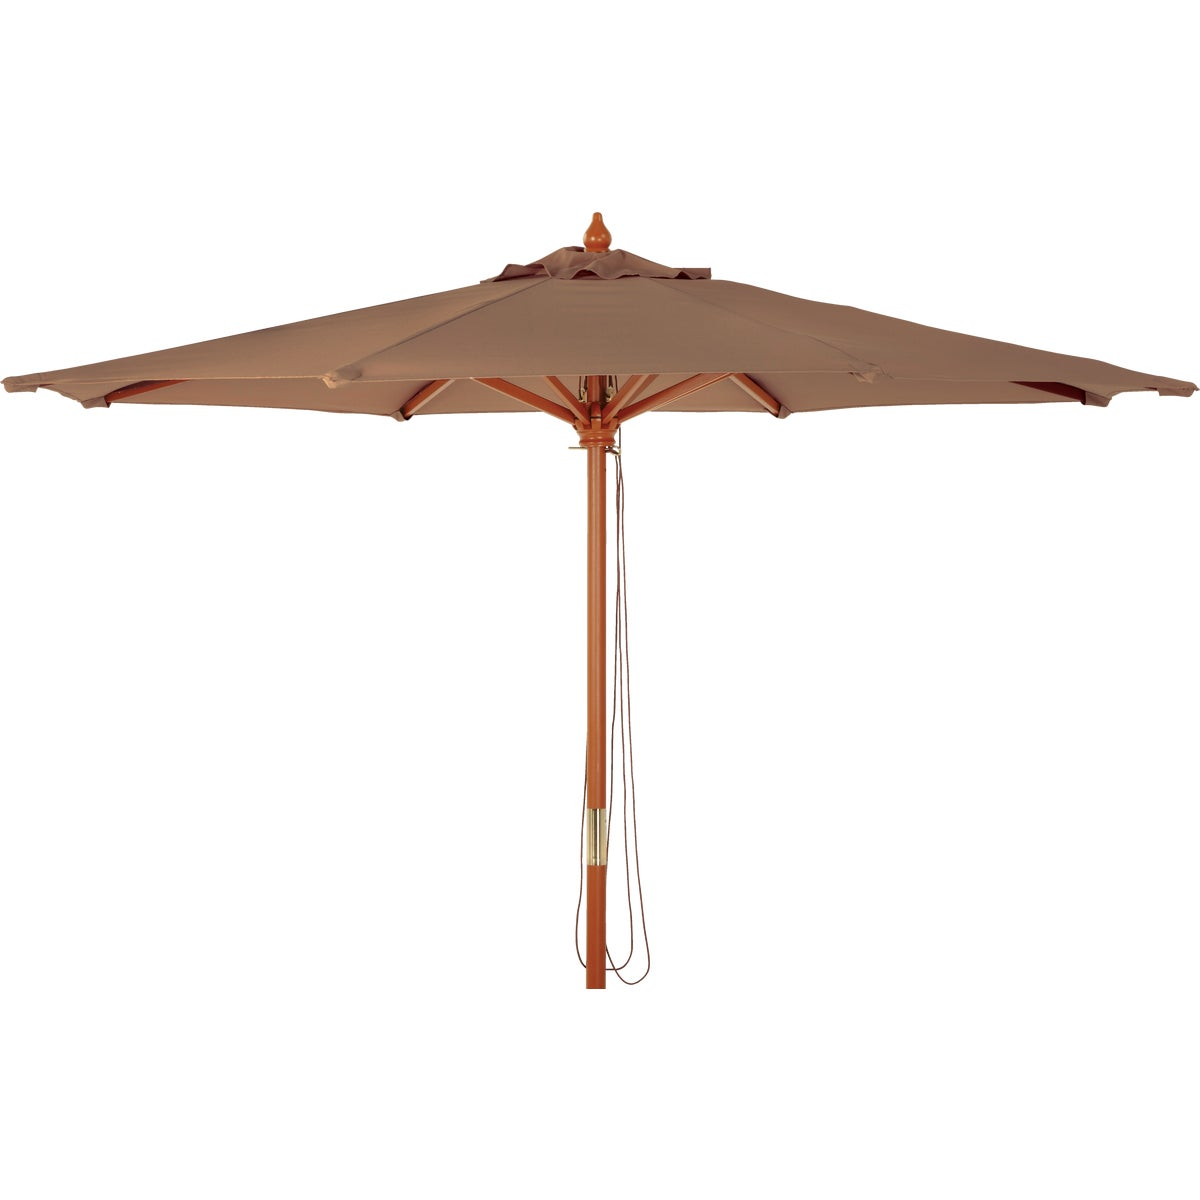 9' MARKET BROWN UMBRELLA - TJWU-003A-270-BRN by Do it Best